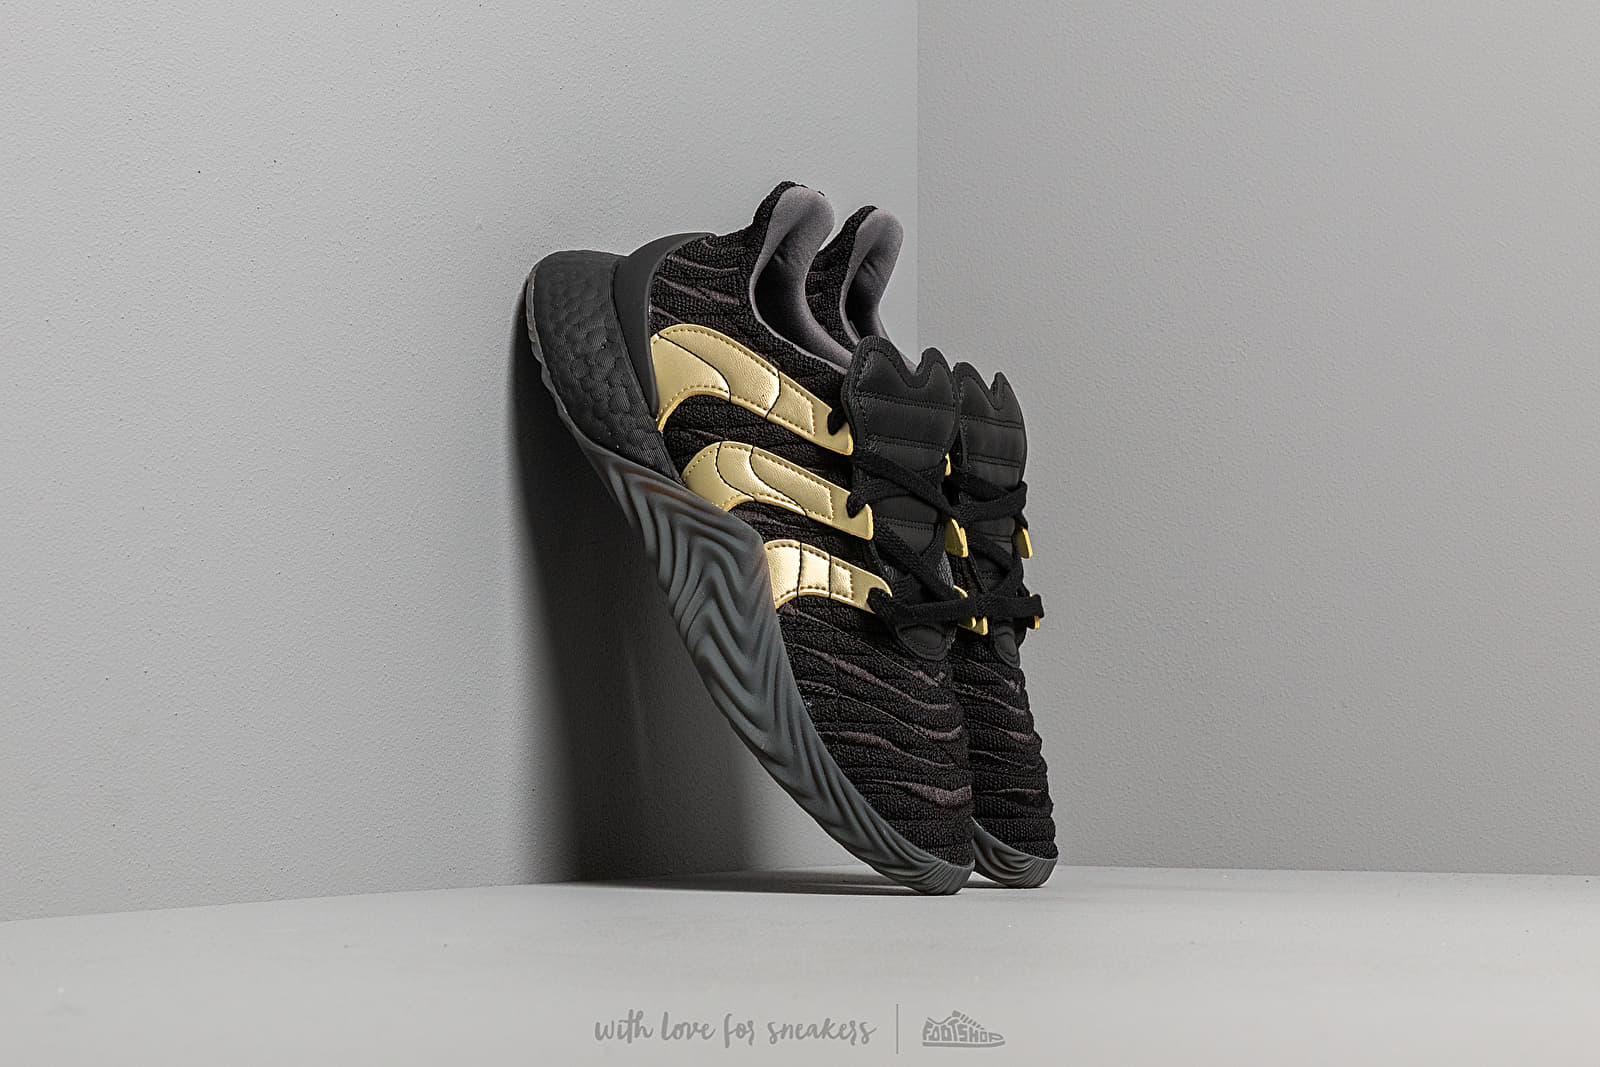 Ανδρικά παπούτσια adidas Sobakov Boost Core Black/ Gold Metallic/ Carbon